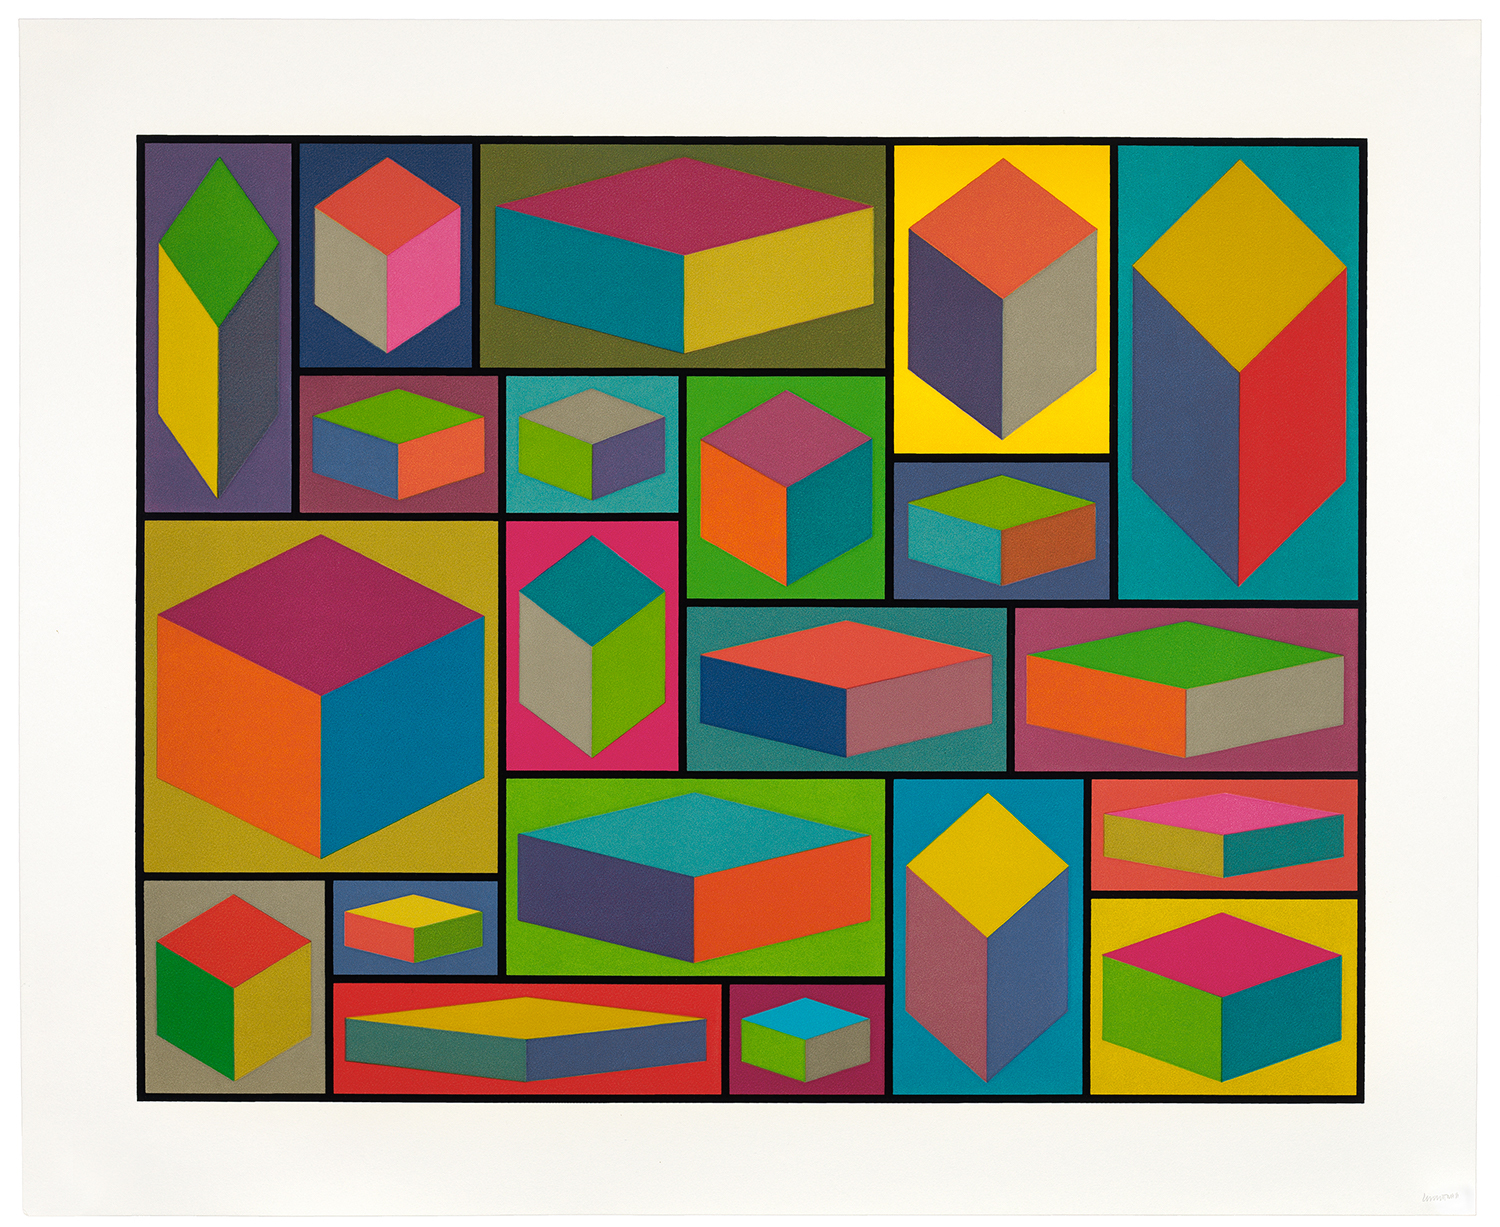 Sol LeWitt, <i> Distorted Cubes</i>, 2001, Set of 5 linocuts, 28 x 35 in., Catalogue Raisonne, NBMAA Collection